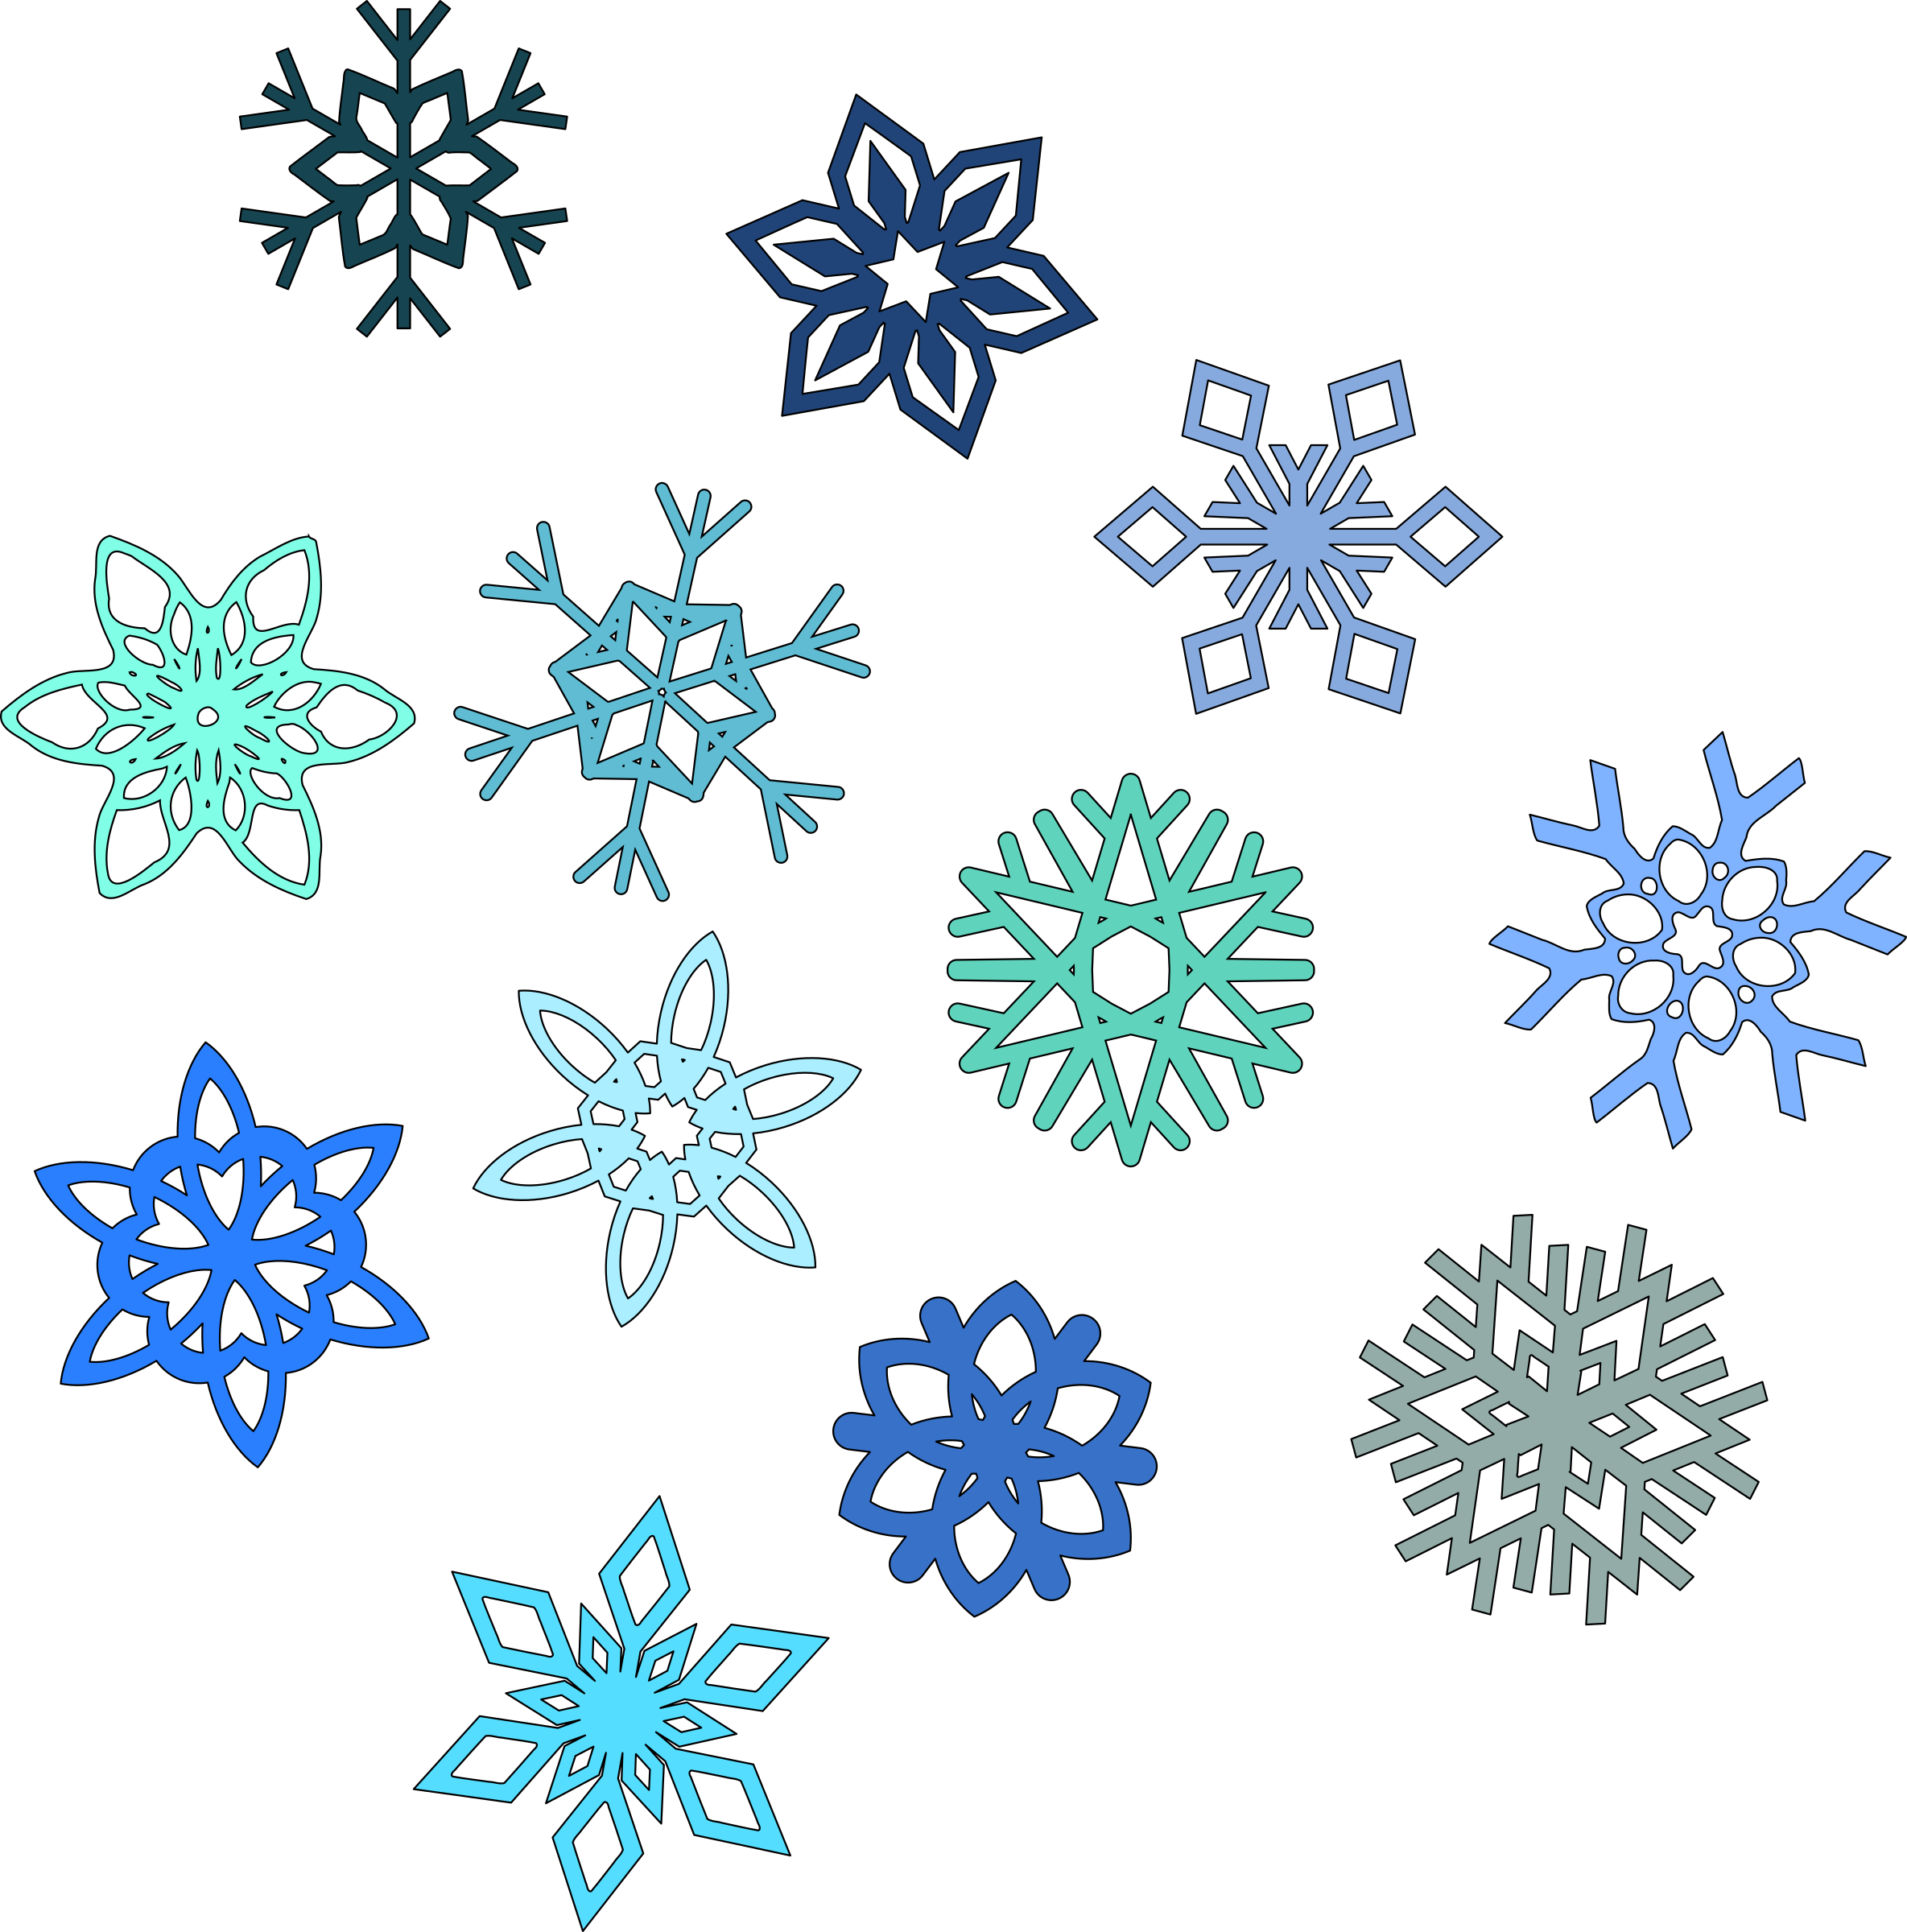 Blue snowflake outline clipart clipart royalty free Keeping a Snow Journal | Pinterest | Scrapbooking clipart royalty free